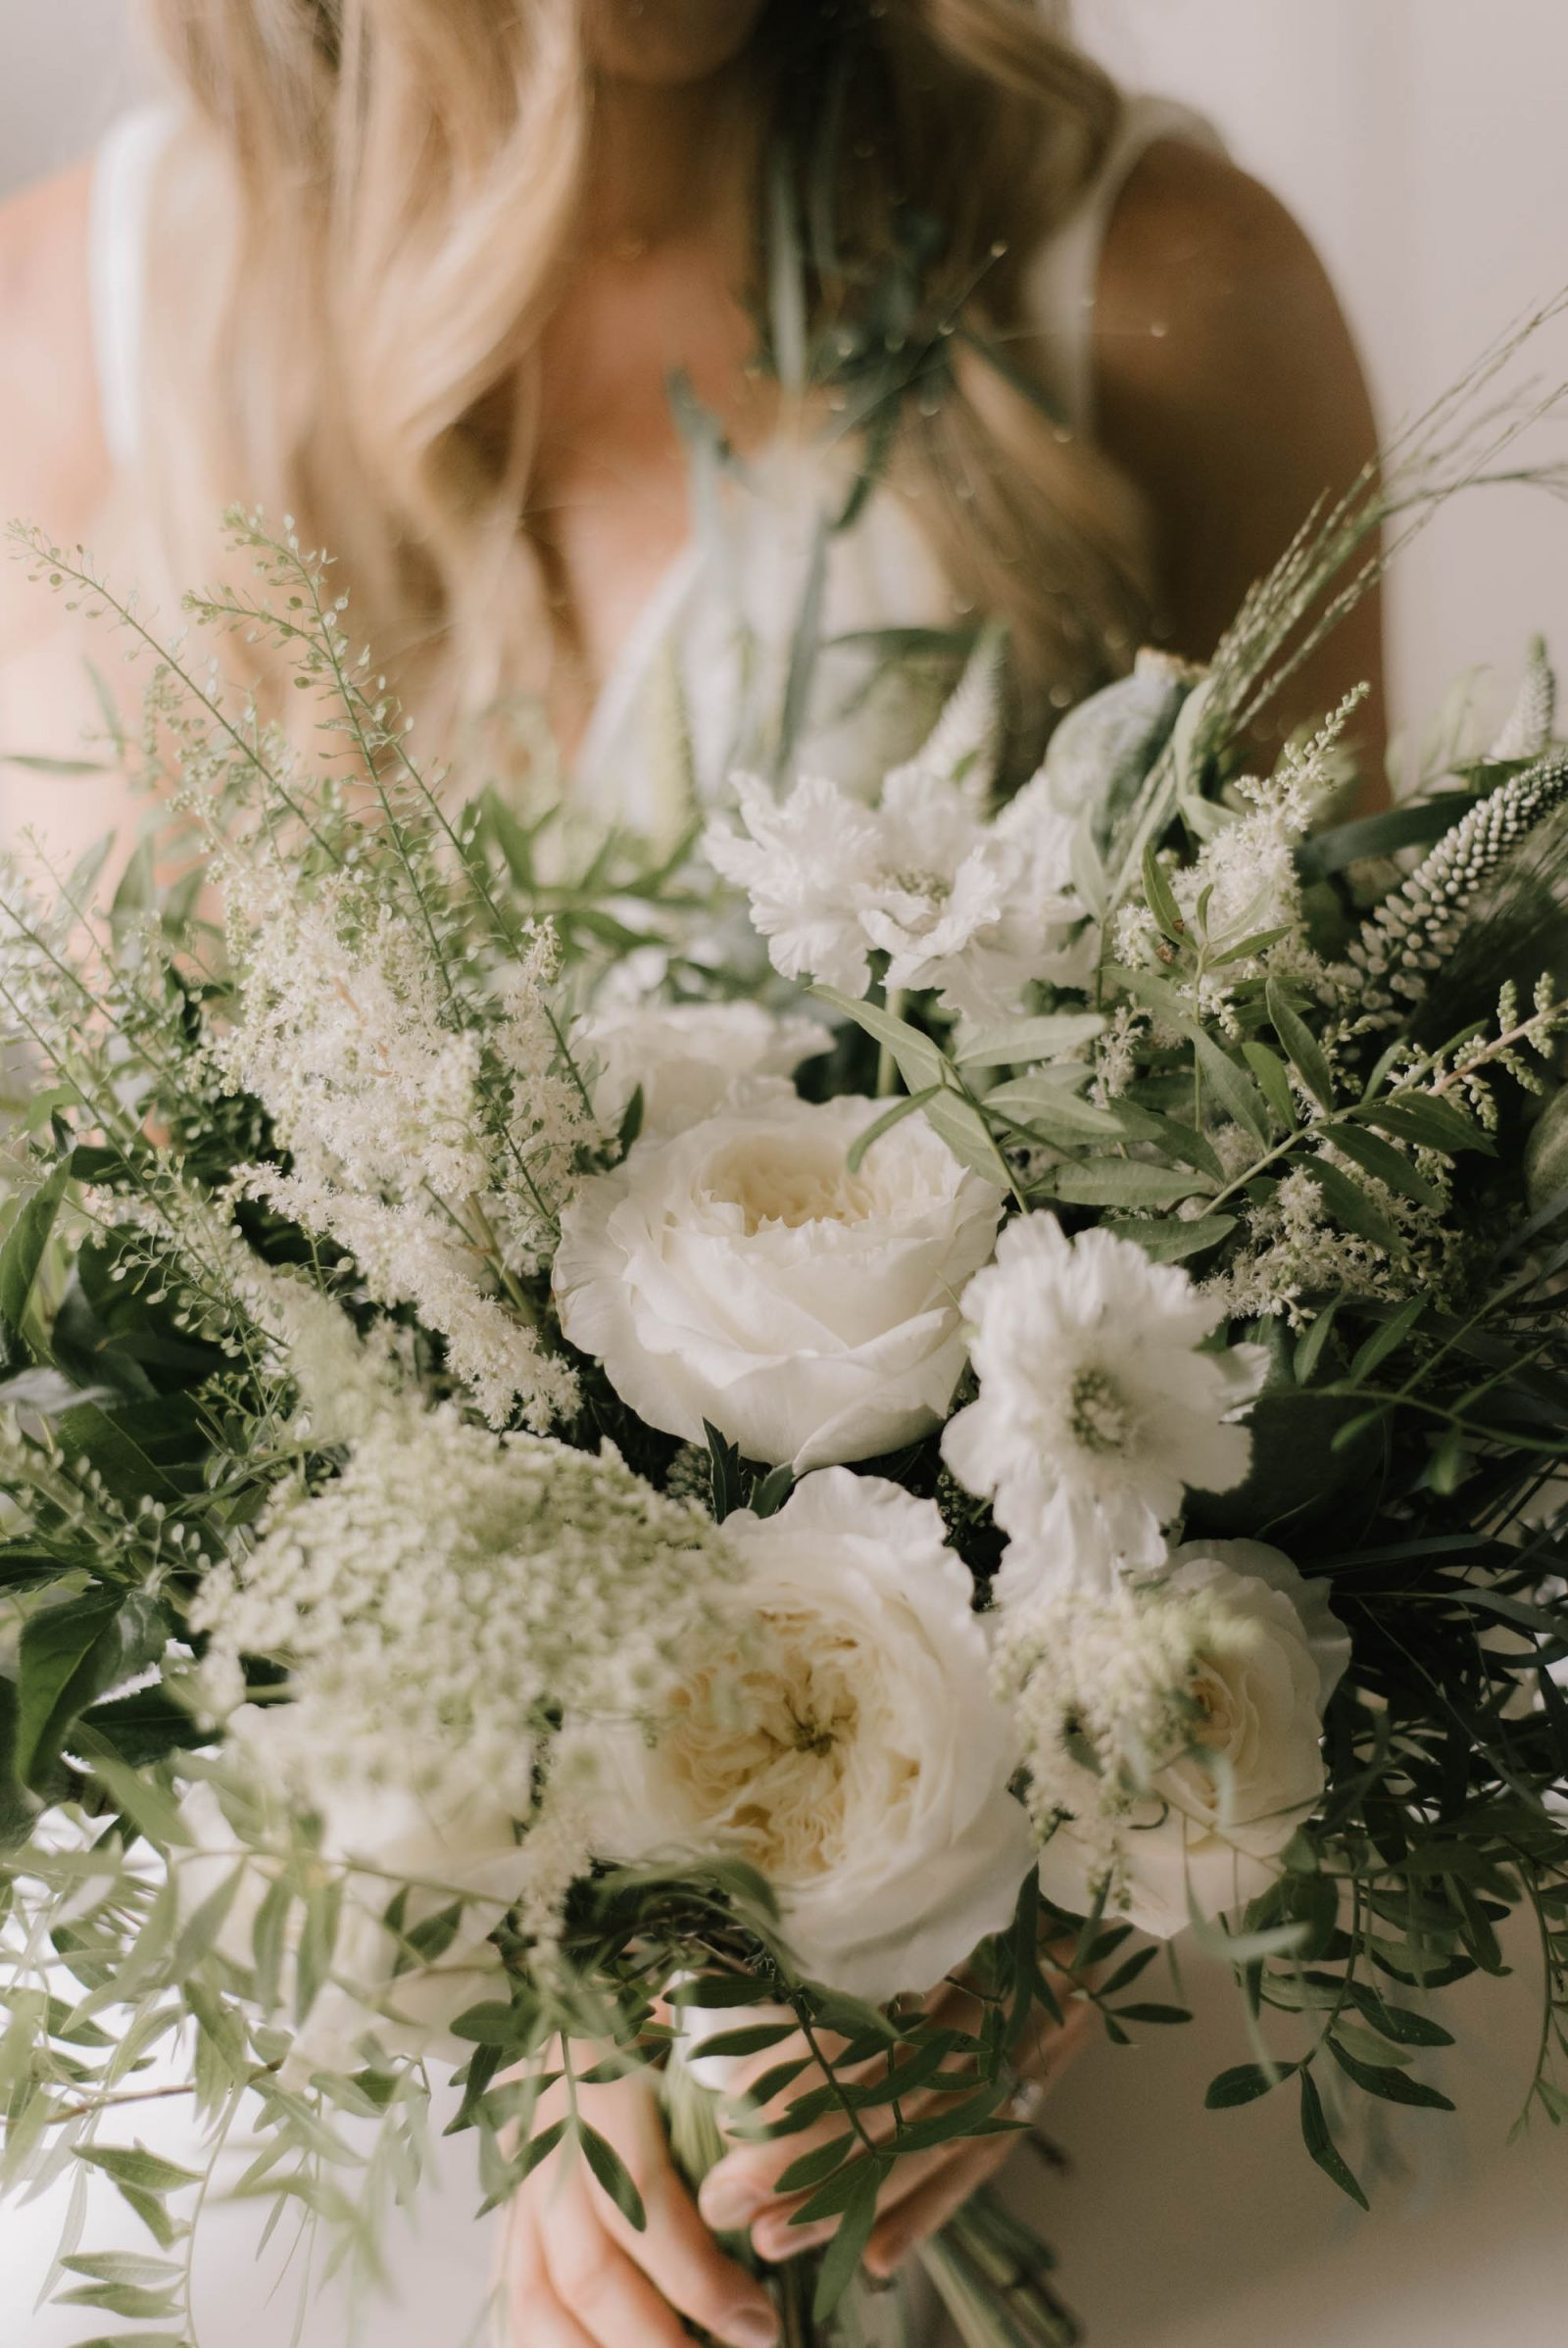 Gorgeous detail shot of brides bouquet